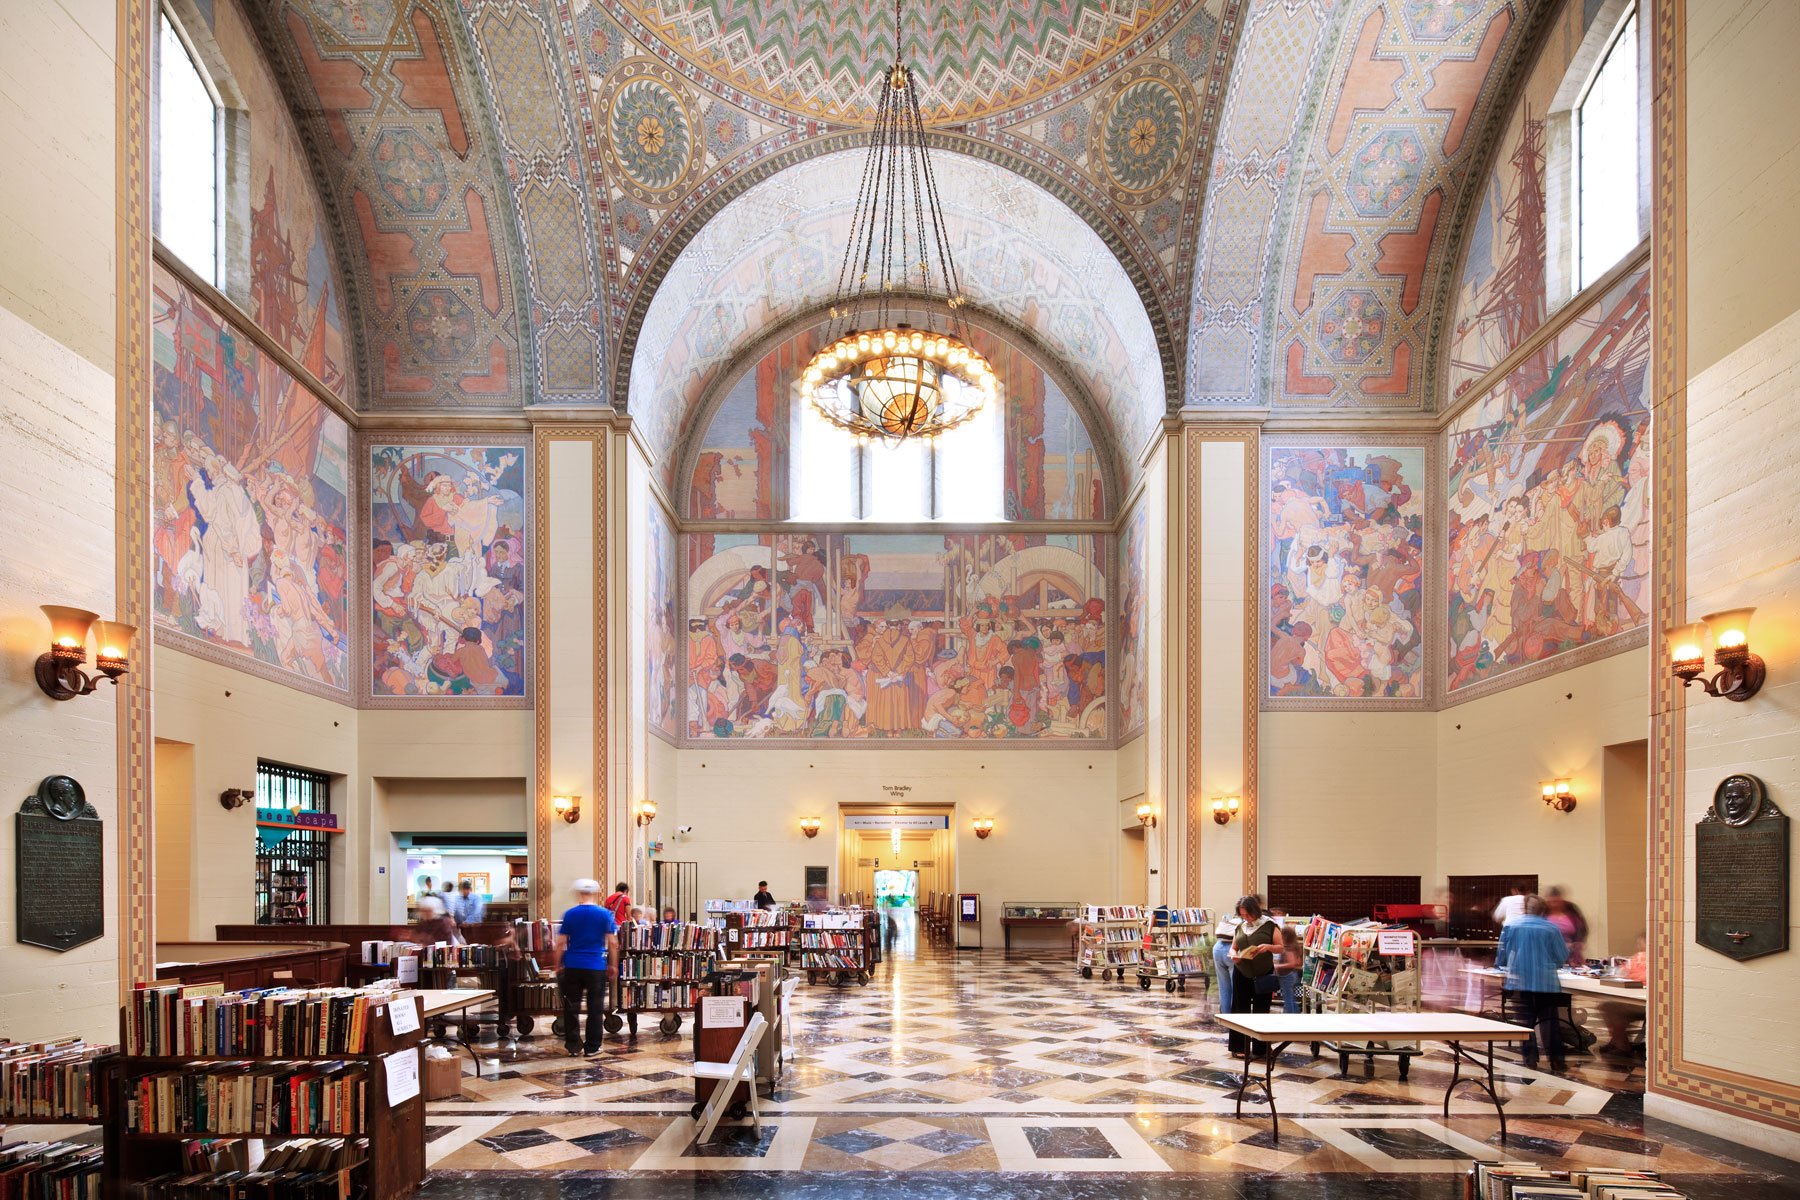 one of my favorite places to go as a child was the library and one of my favorite libraries is the los angeles public library